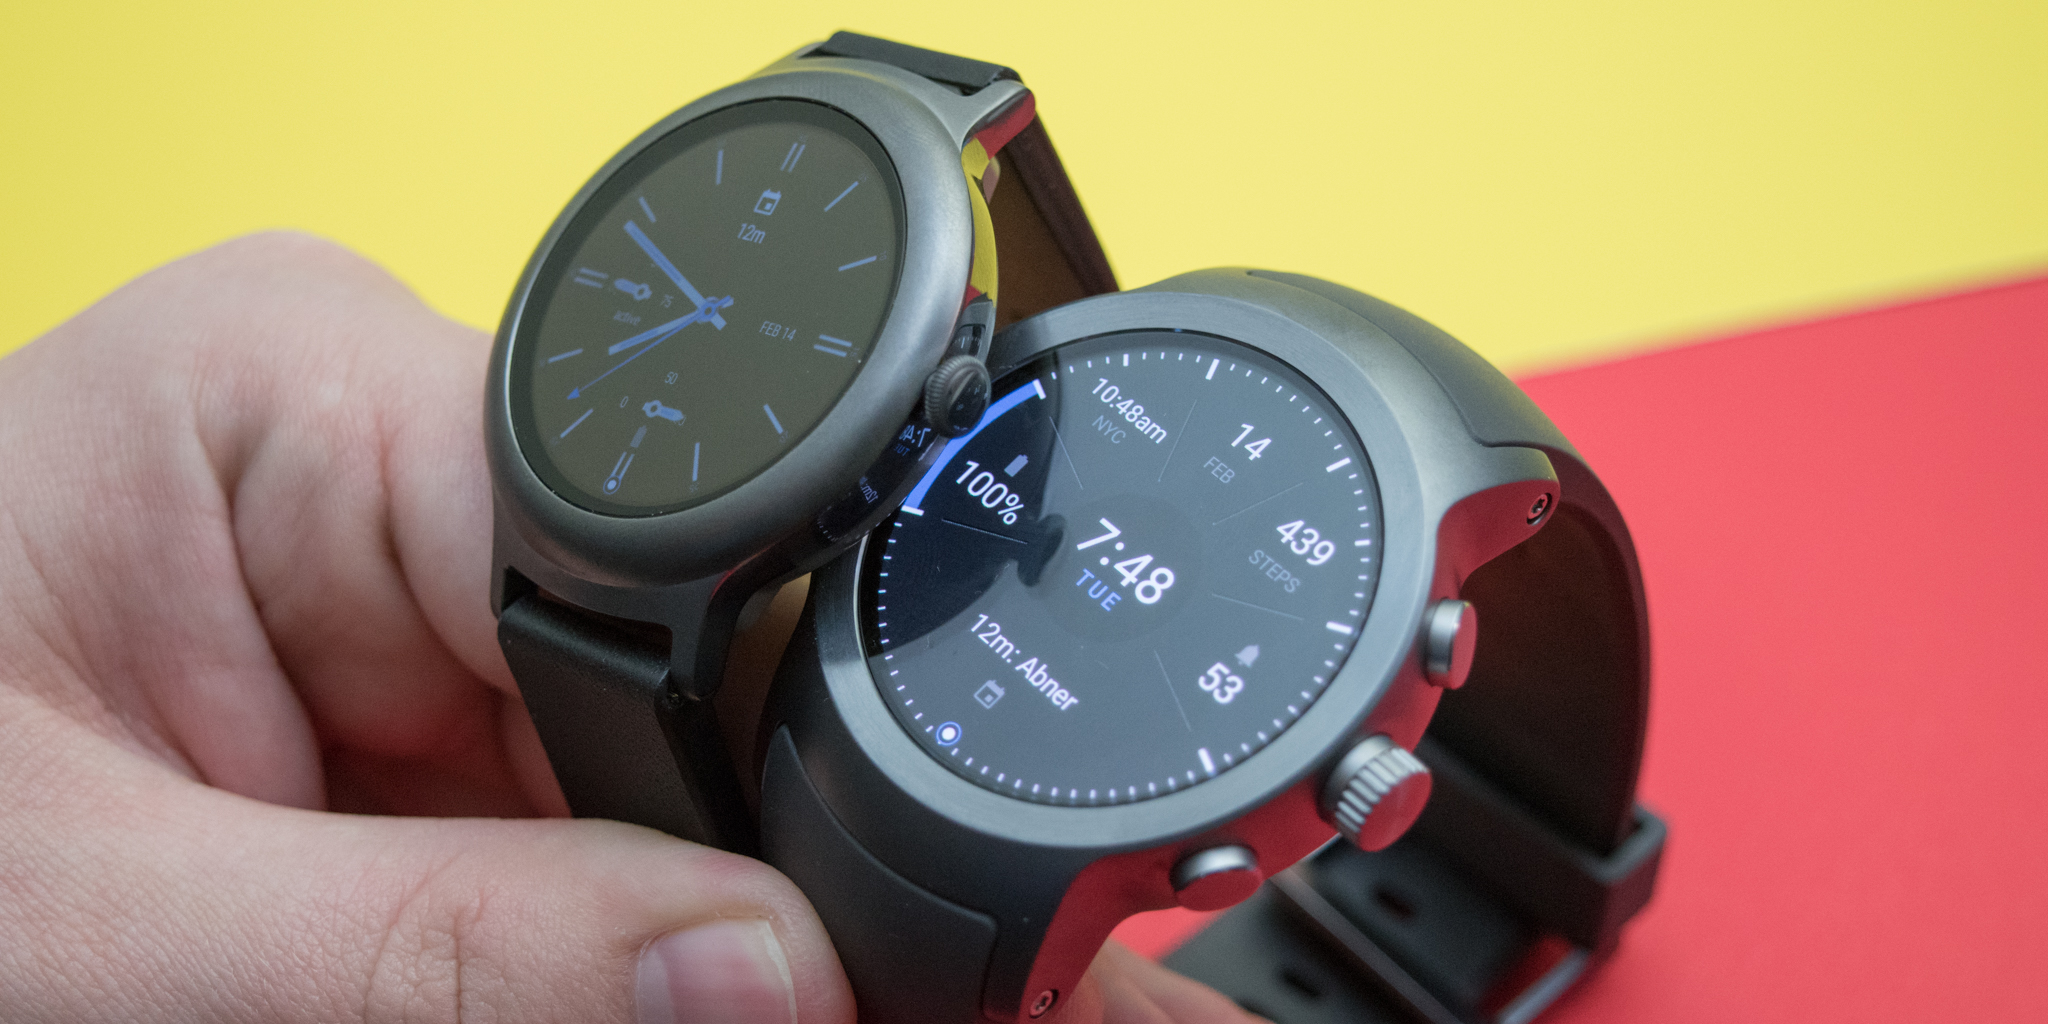 Report: Google-branded smartwatches canceled in 2016, no 'Pixel Watch' next month